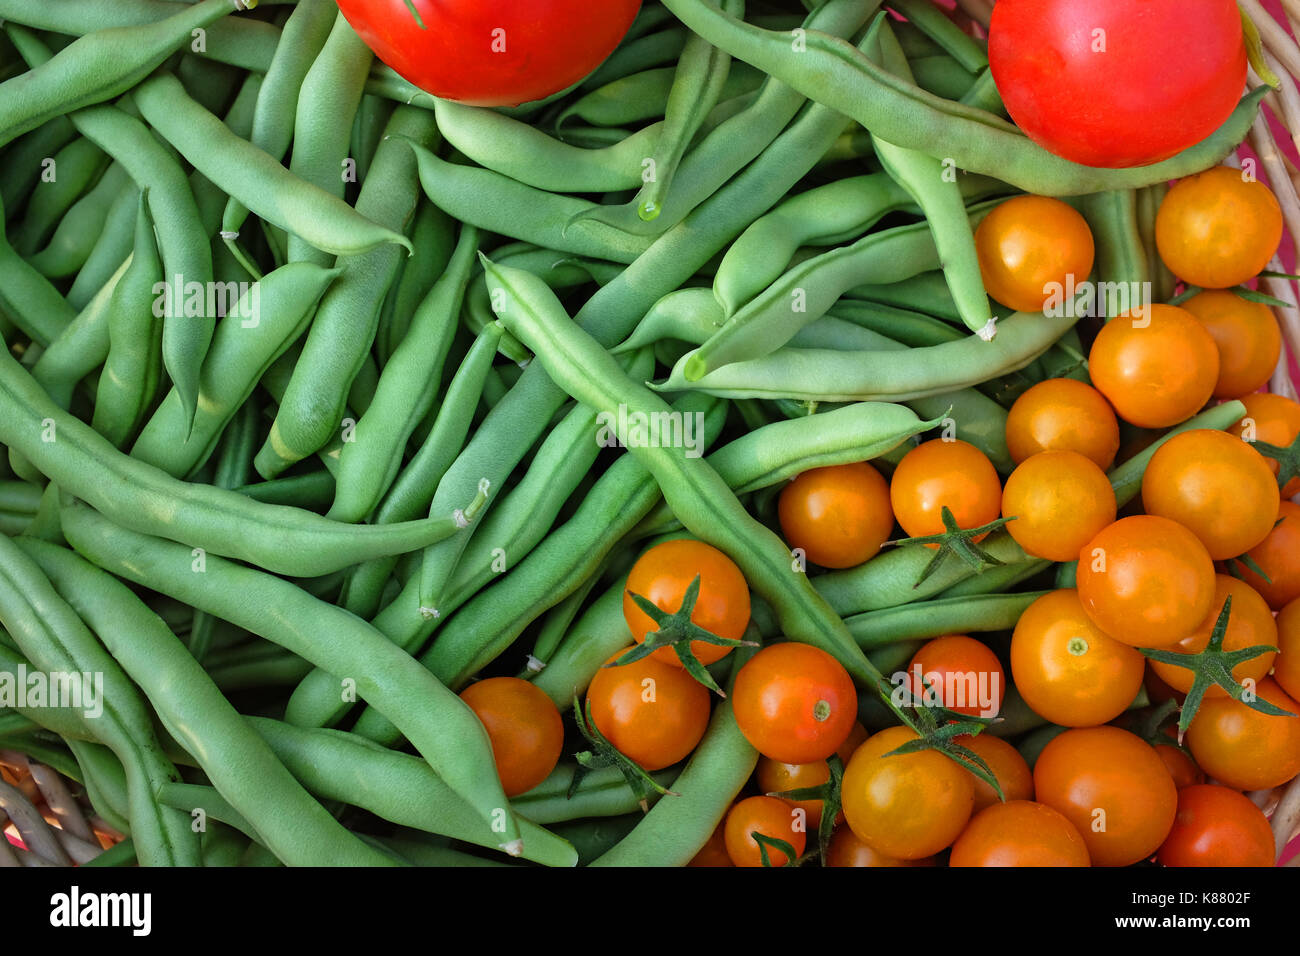 Fresh organic sungold tomatoes, early girl tomatoes, and blue lake pole beans, from a home garden in central oregon. - Stock Image